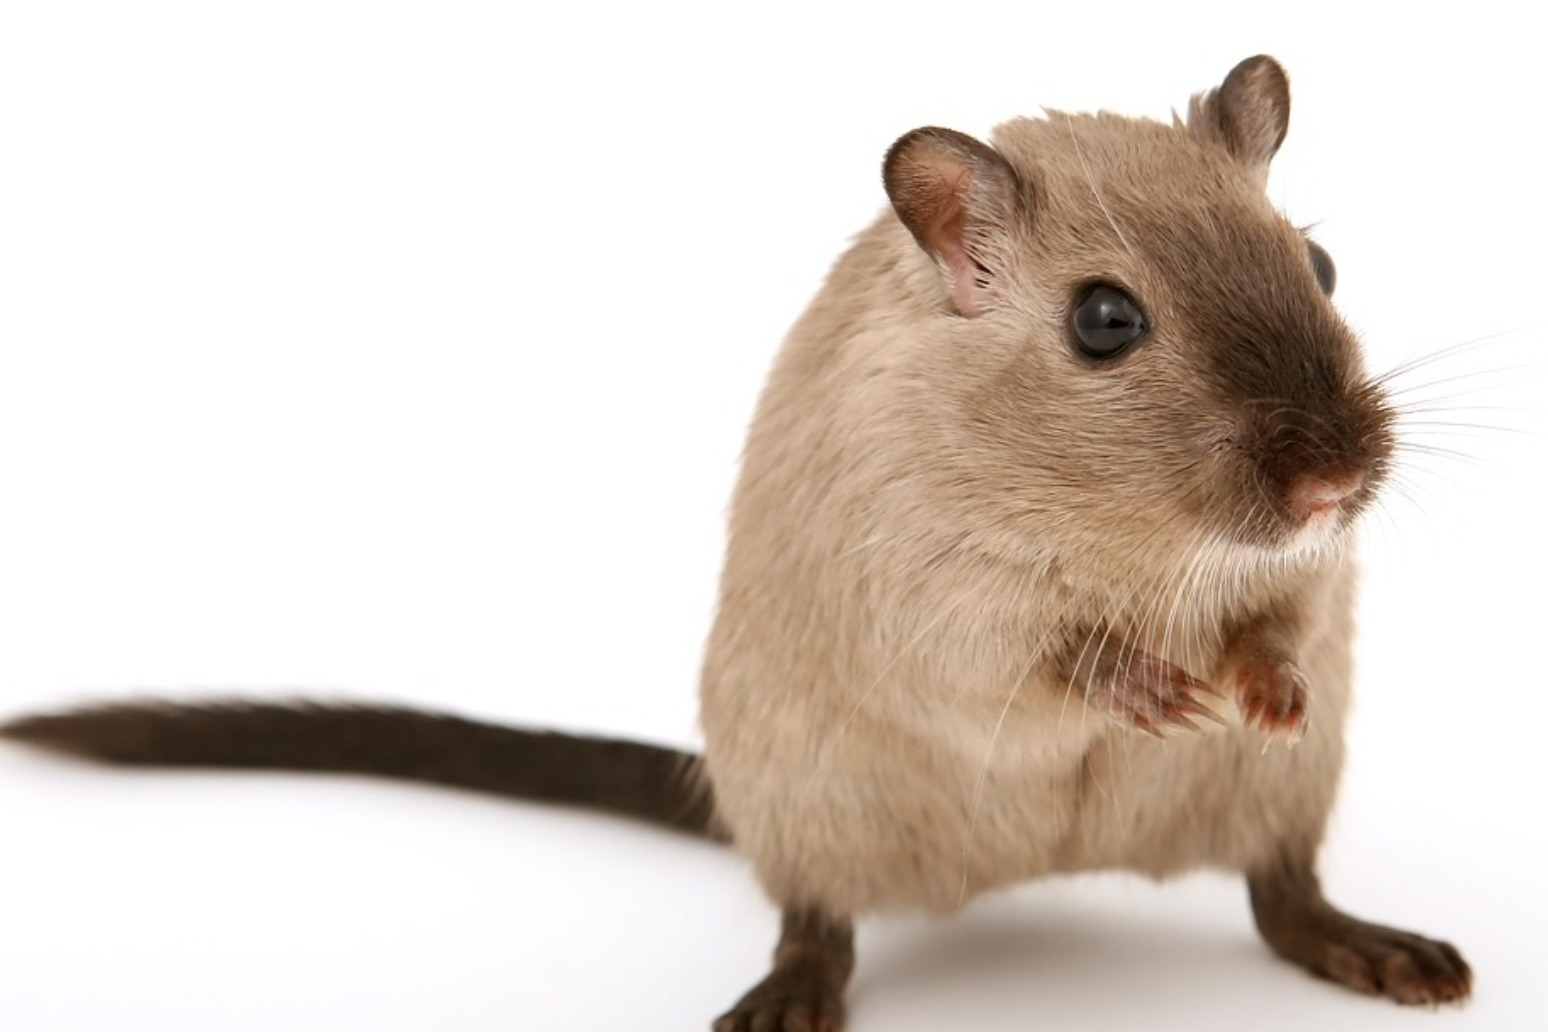 WOMAN LIVING IN VAN GIVES UP HER 320 PET RATS